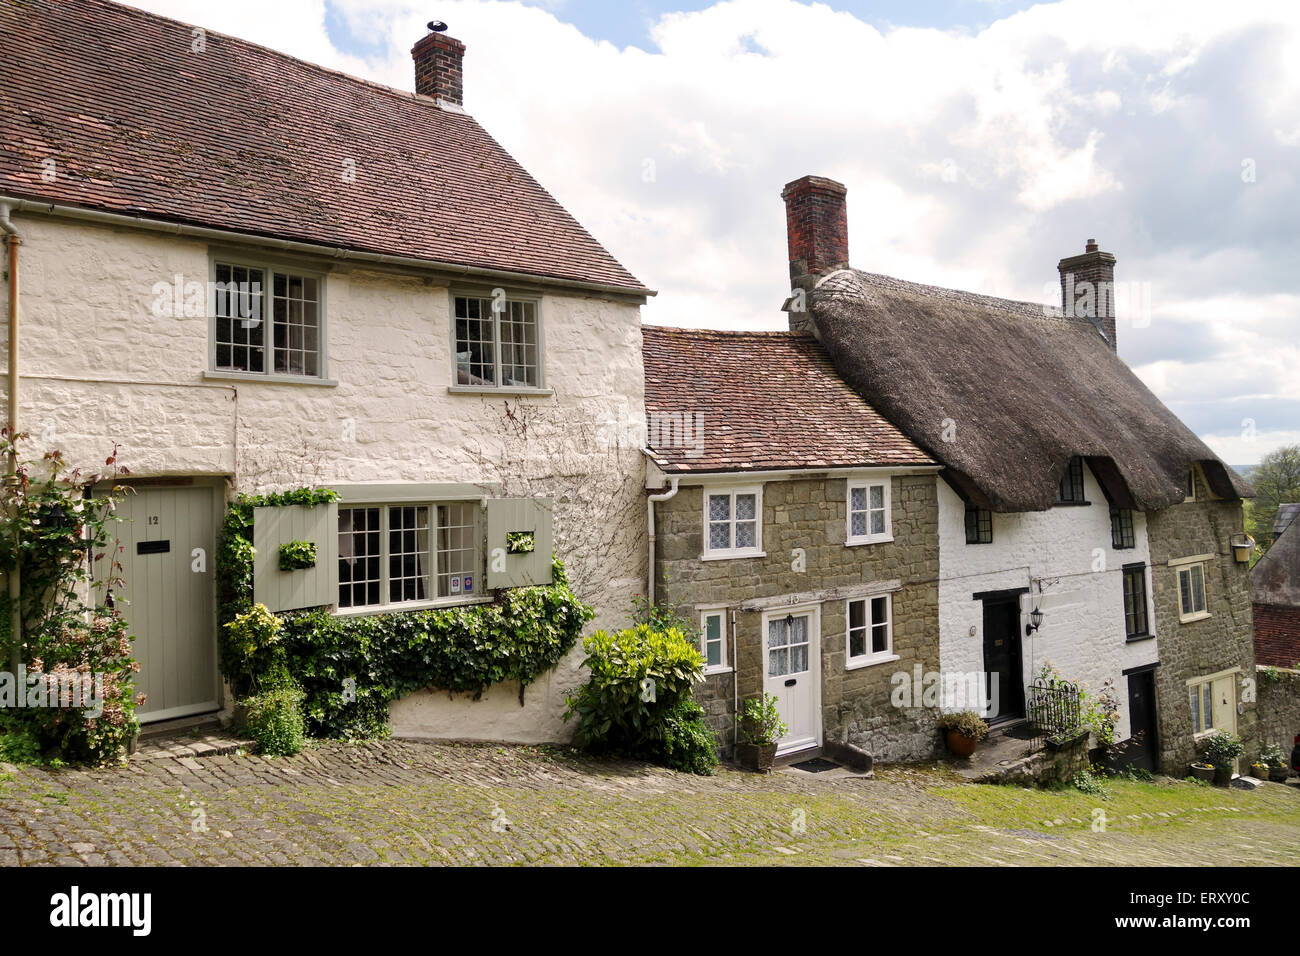 Gold Hill, Shaftesbury home of the Hovis Advert, Dorset - Stock Image